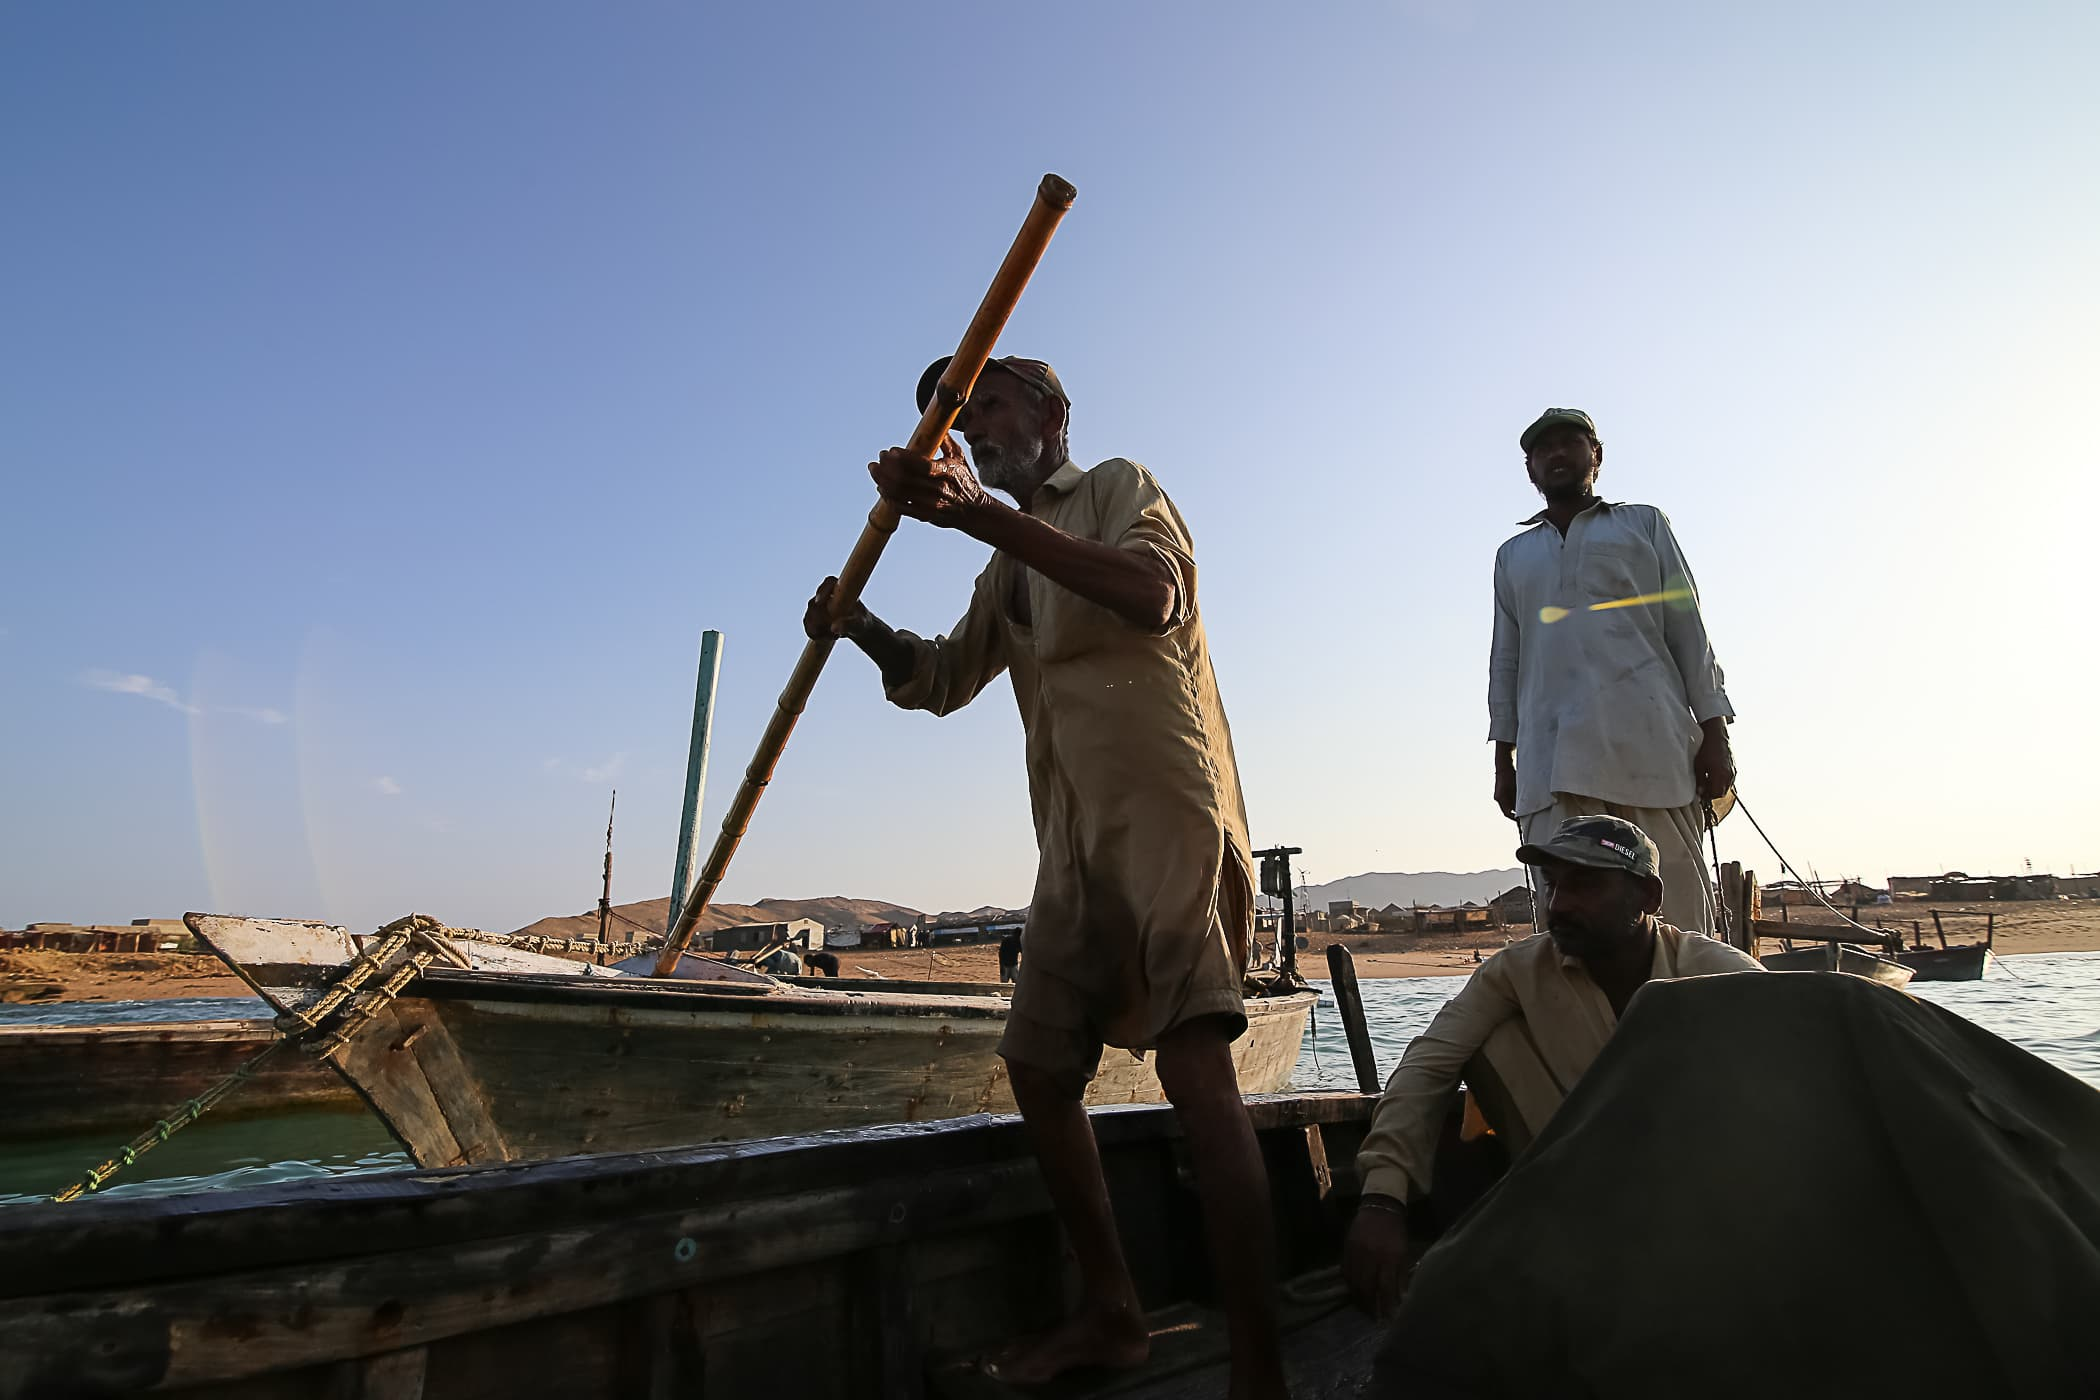 Chaca Majeed transports other fishermen to their boats.